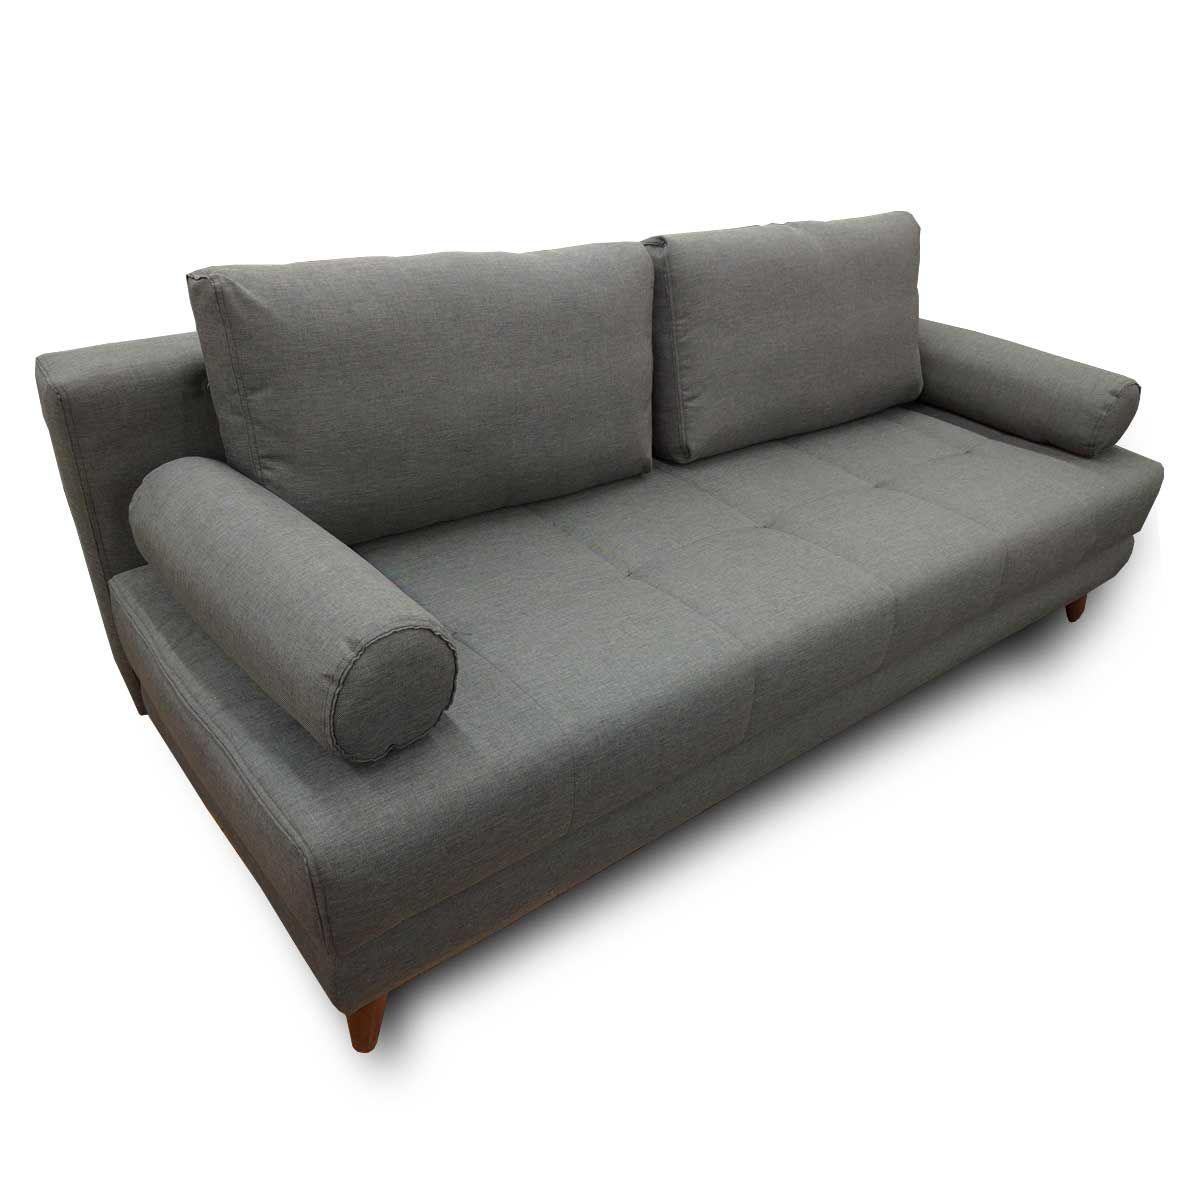 Brilliant Stella Diego Dark Gray Convertible Sofa Bed Queen Sleeper Home Interior And Landscaping Ologienasavecom